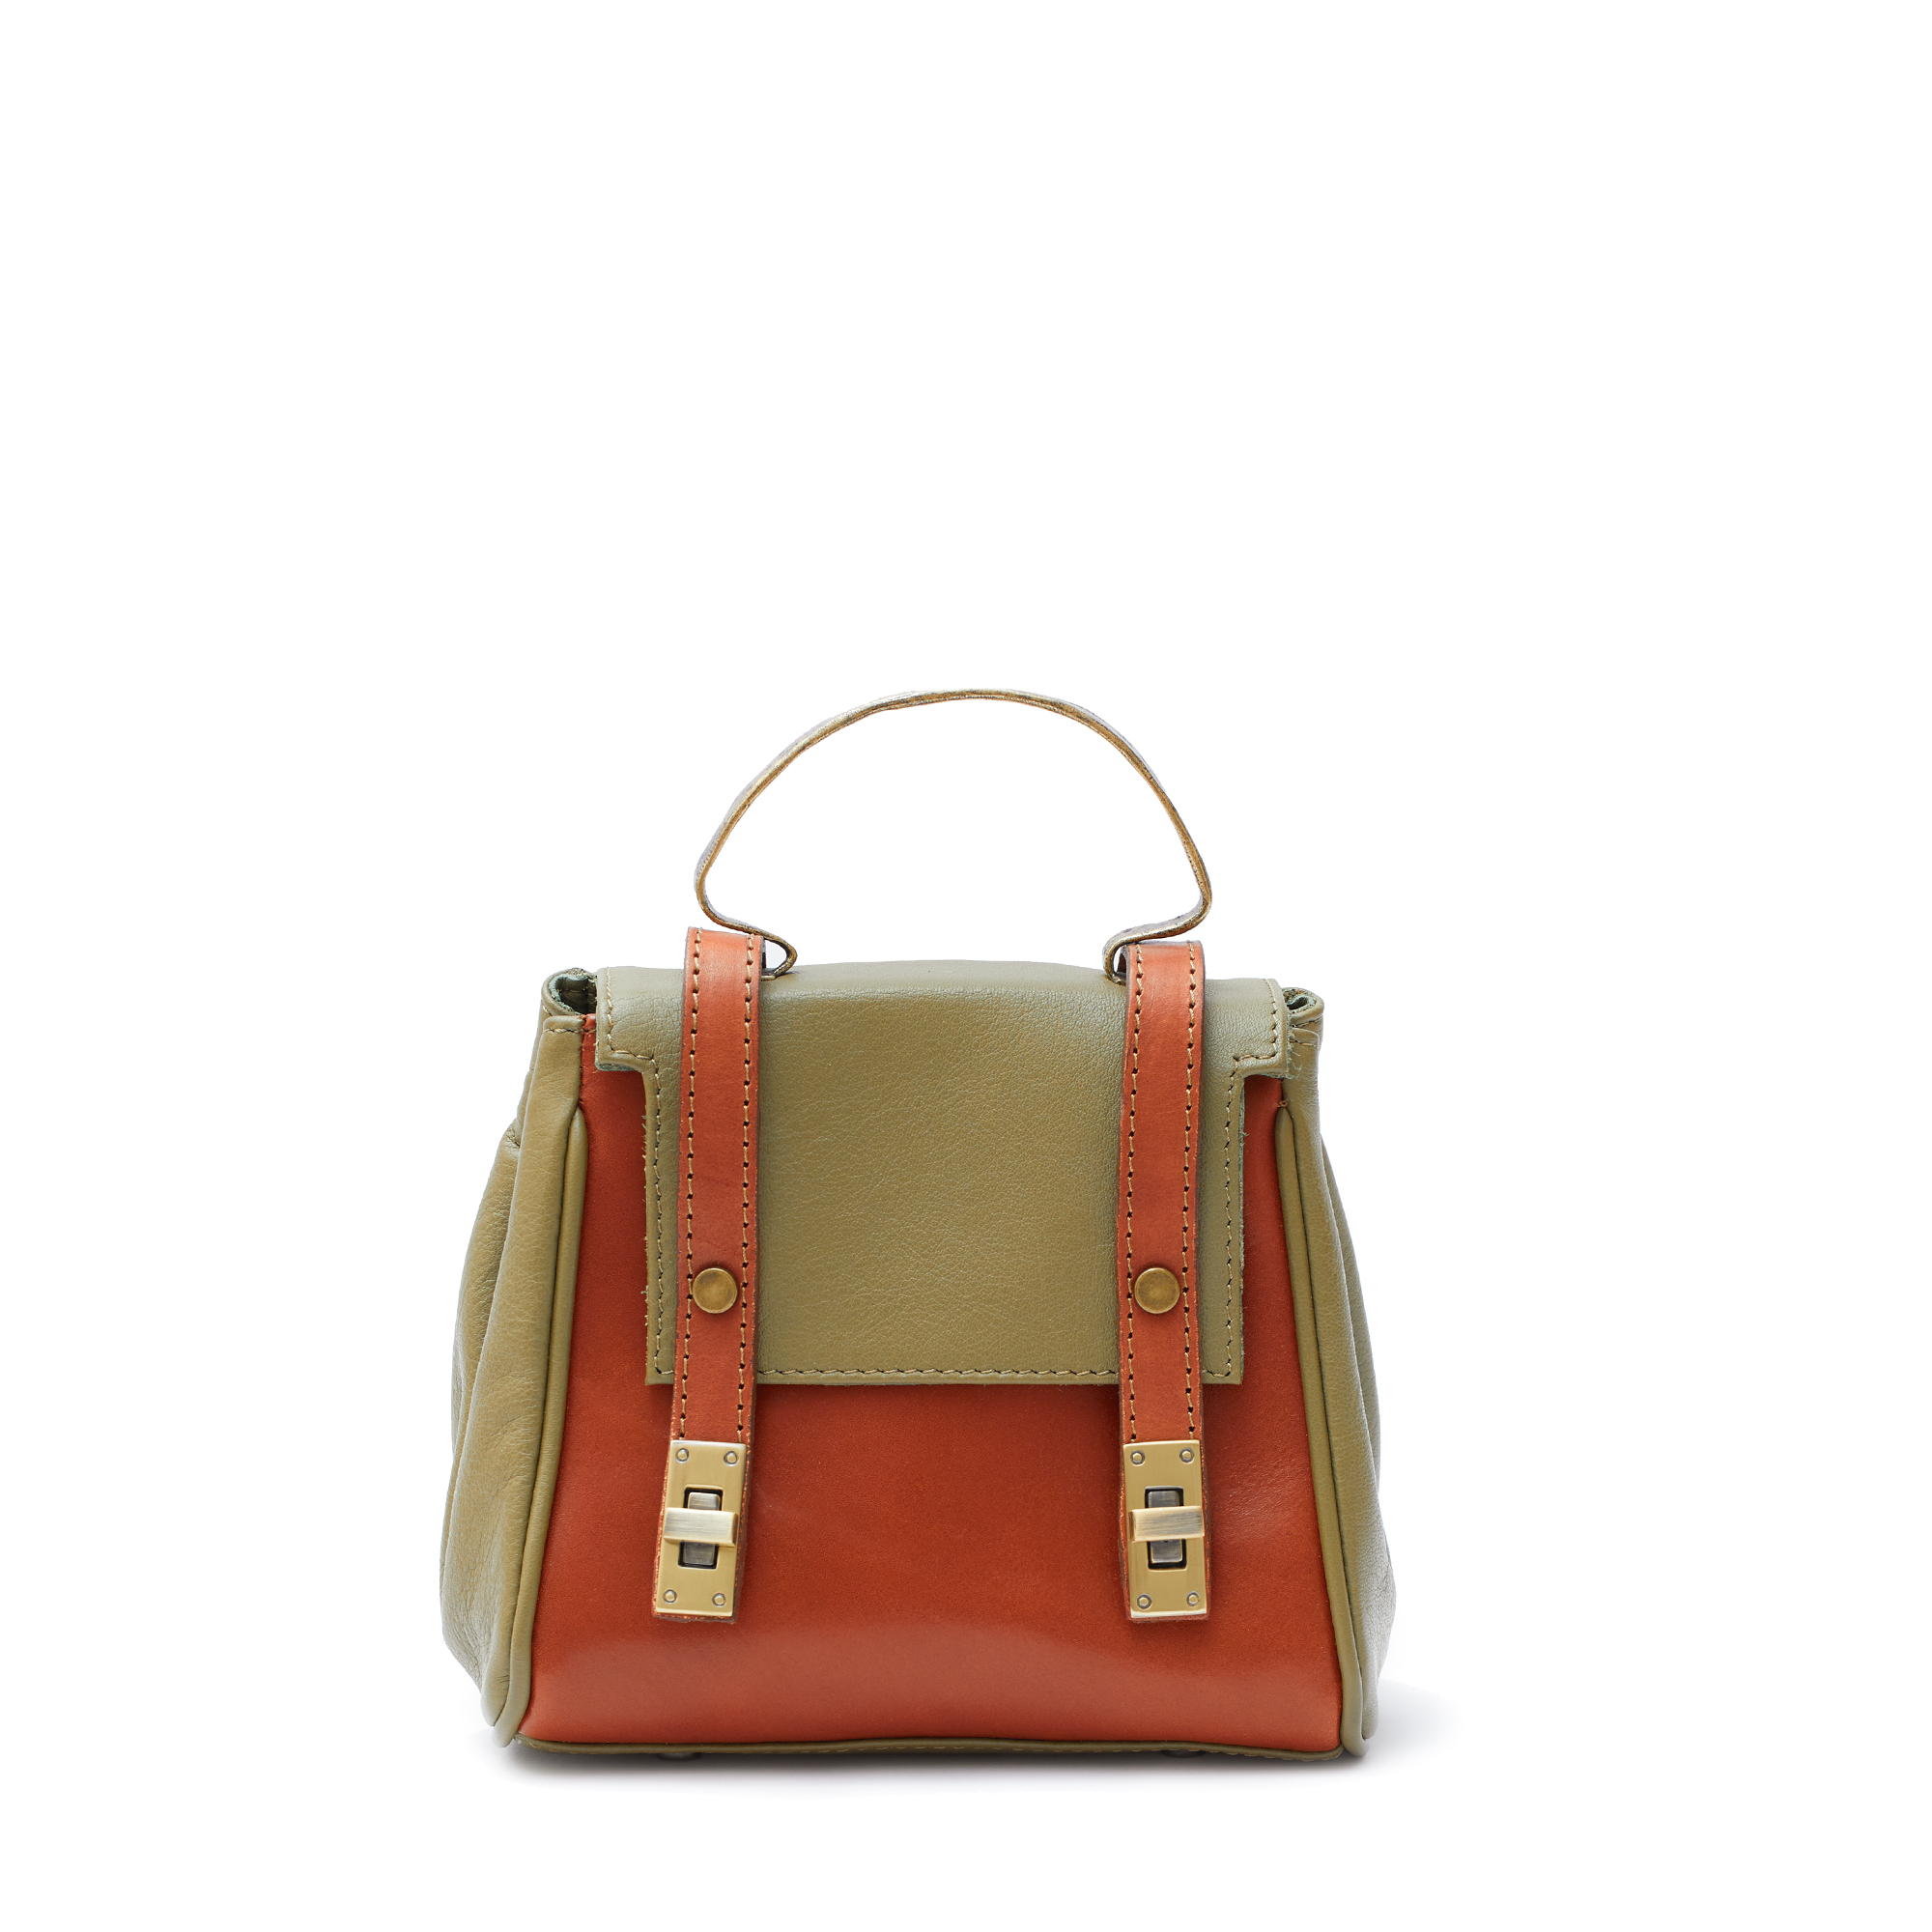 Roby Bag